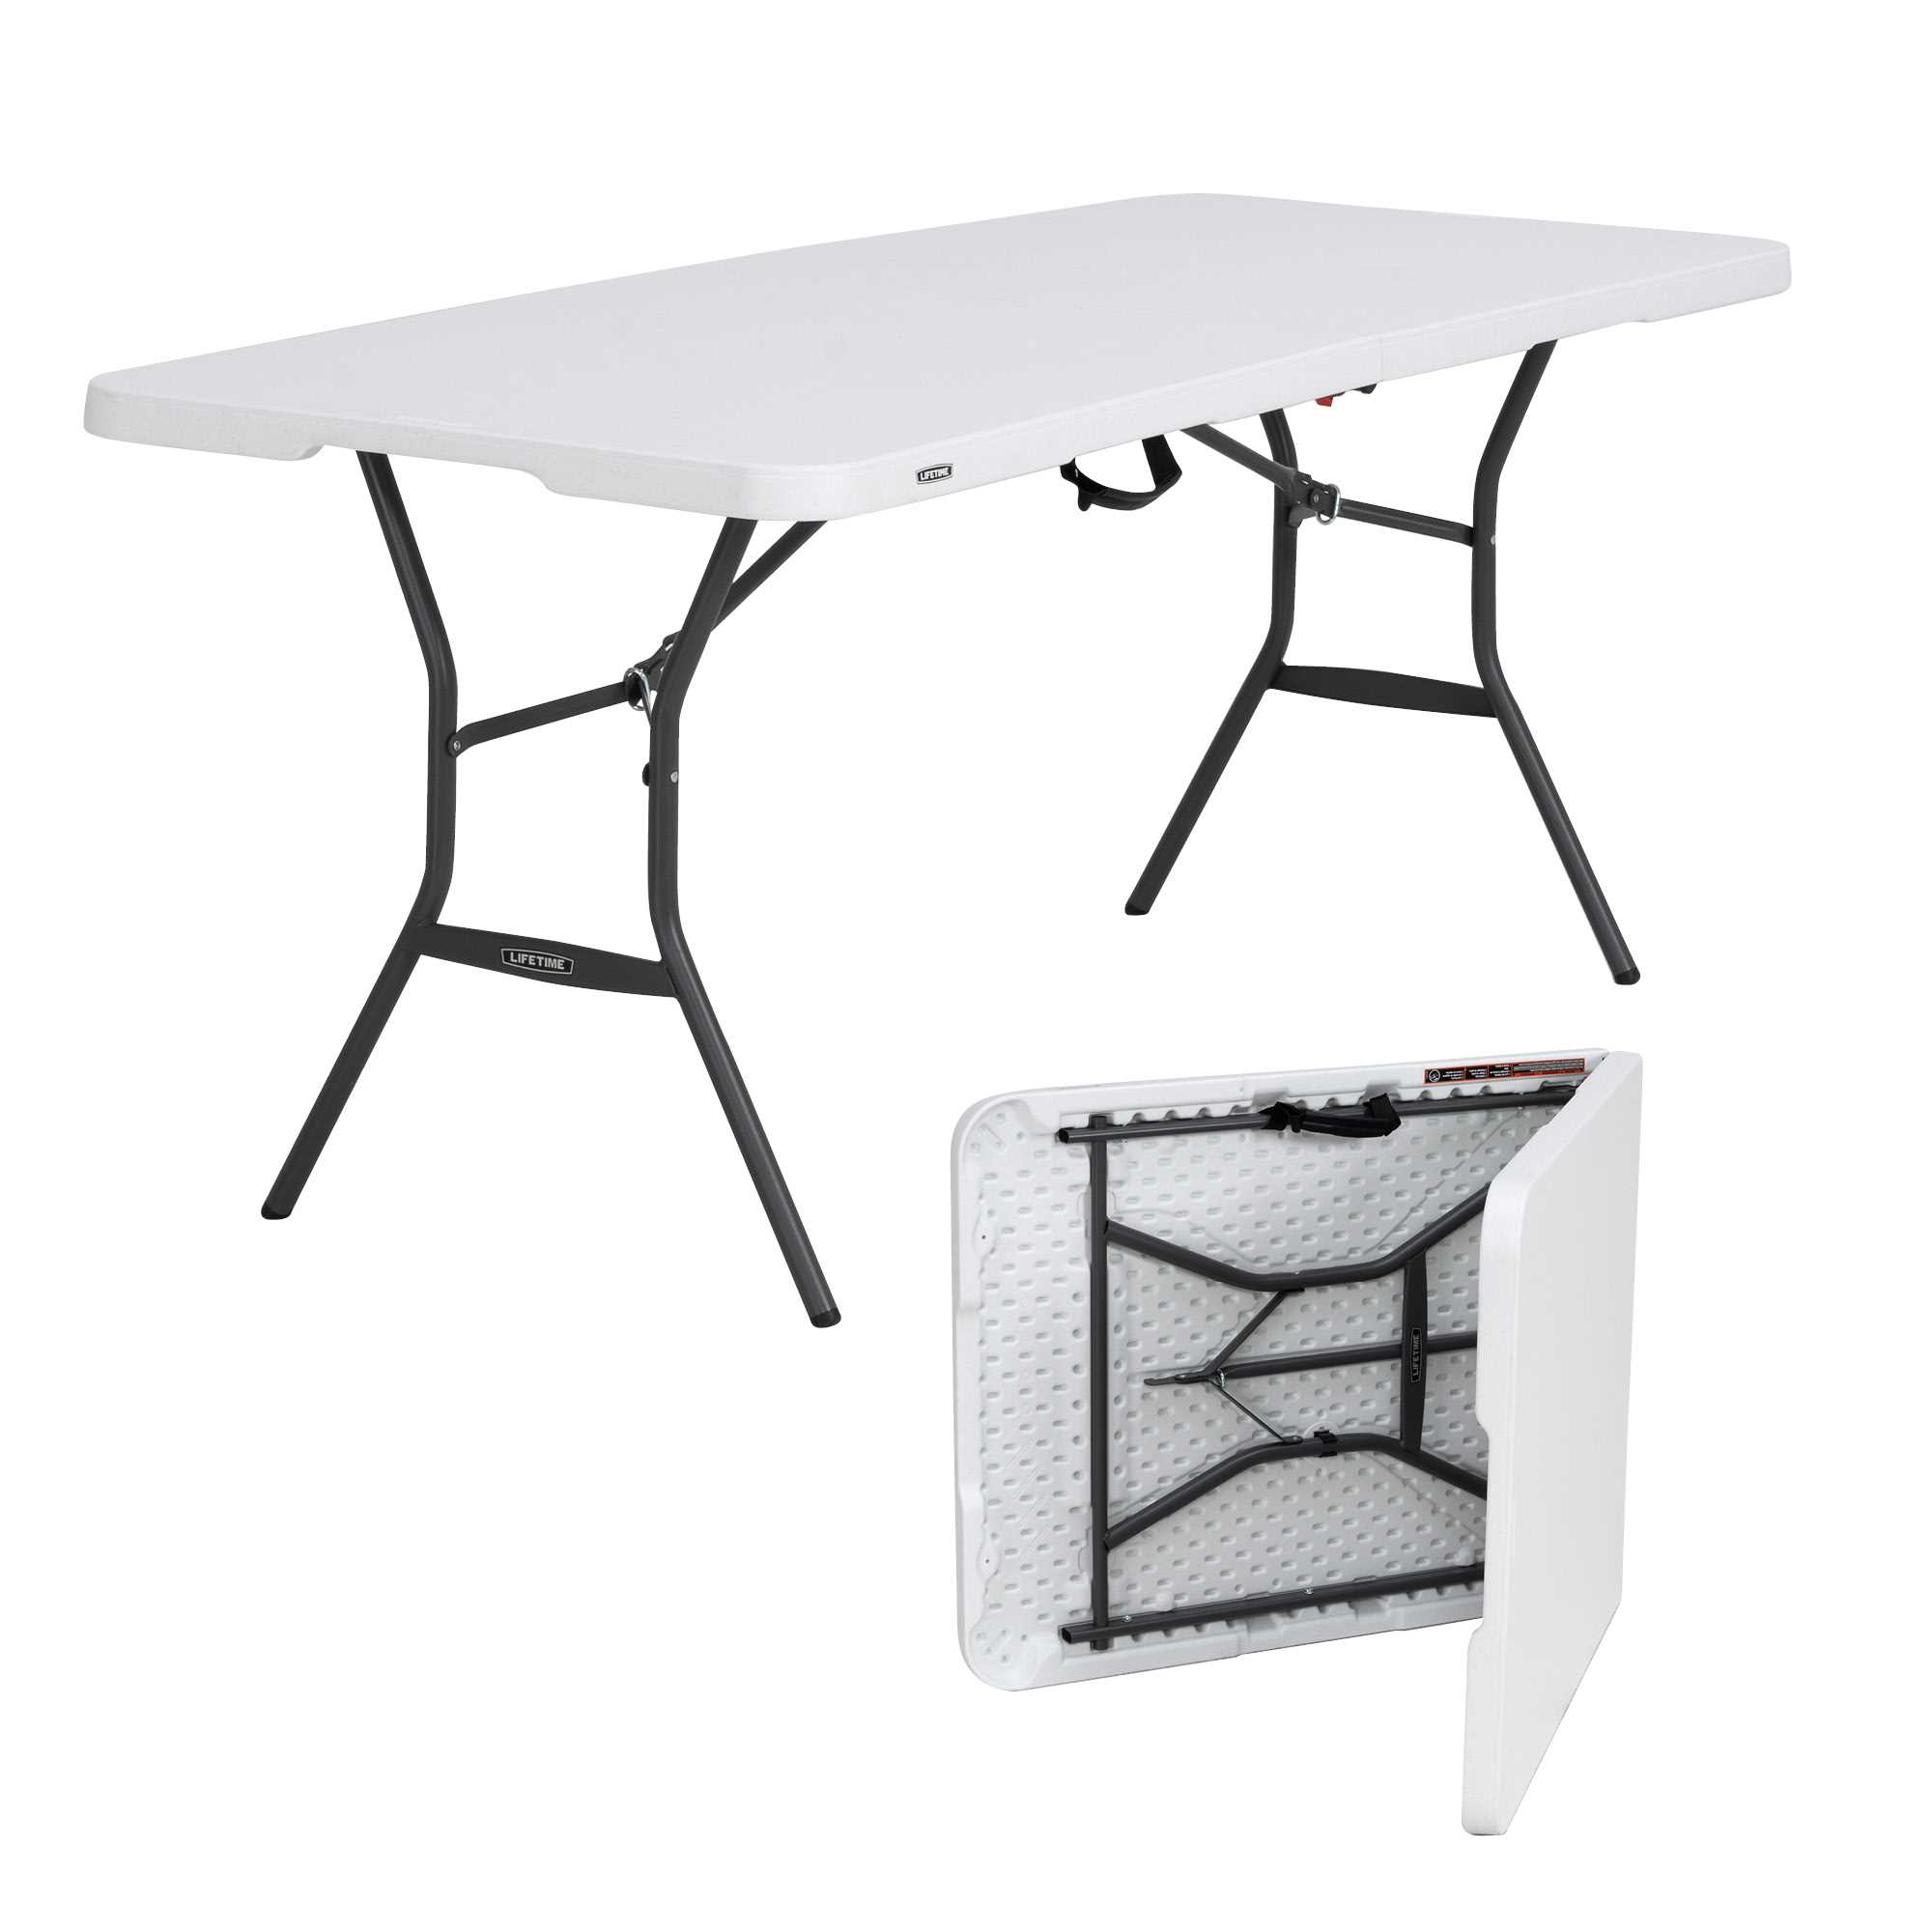 Lifetime 6-Foot Fold-In-Half Table (Light Commercial)